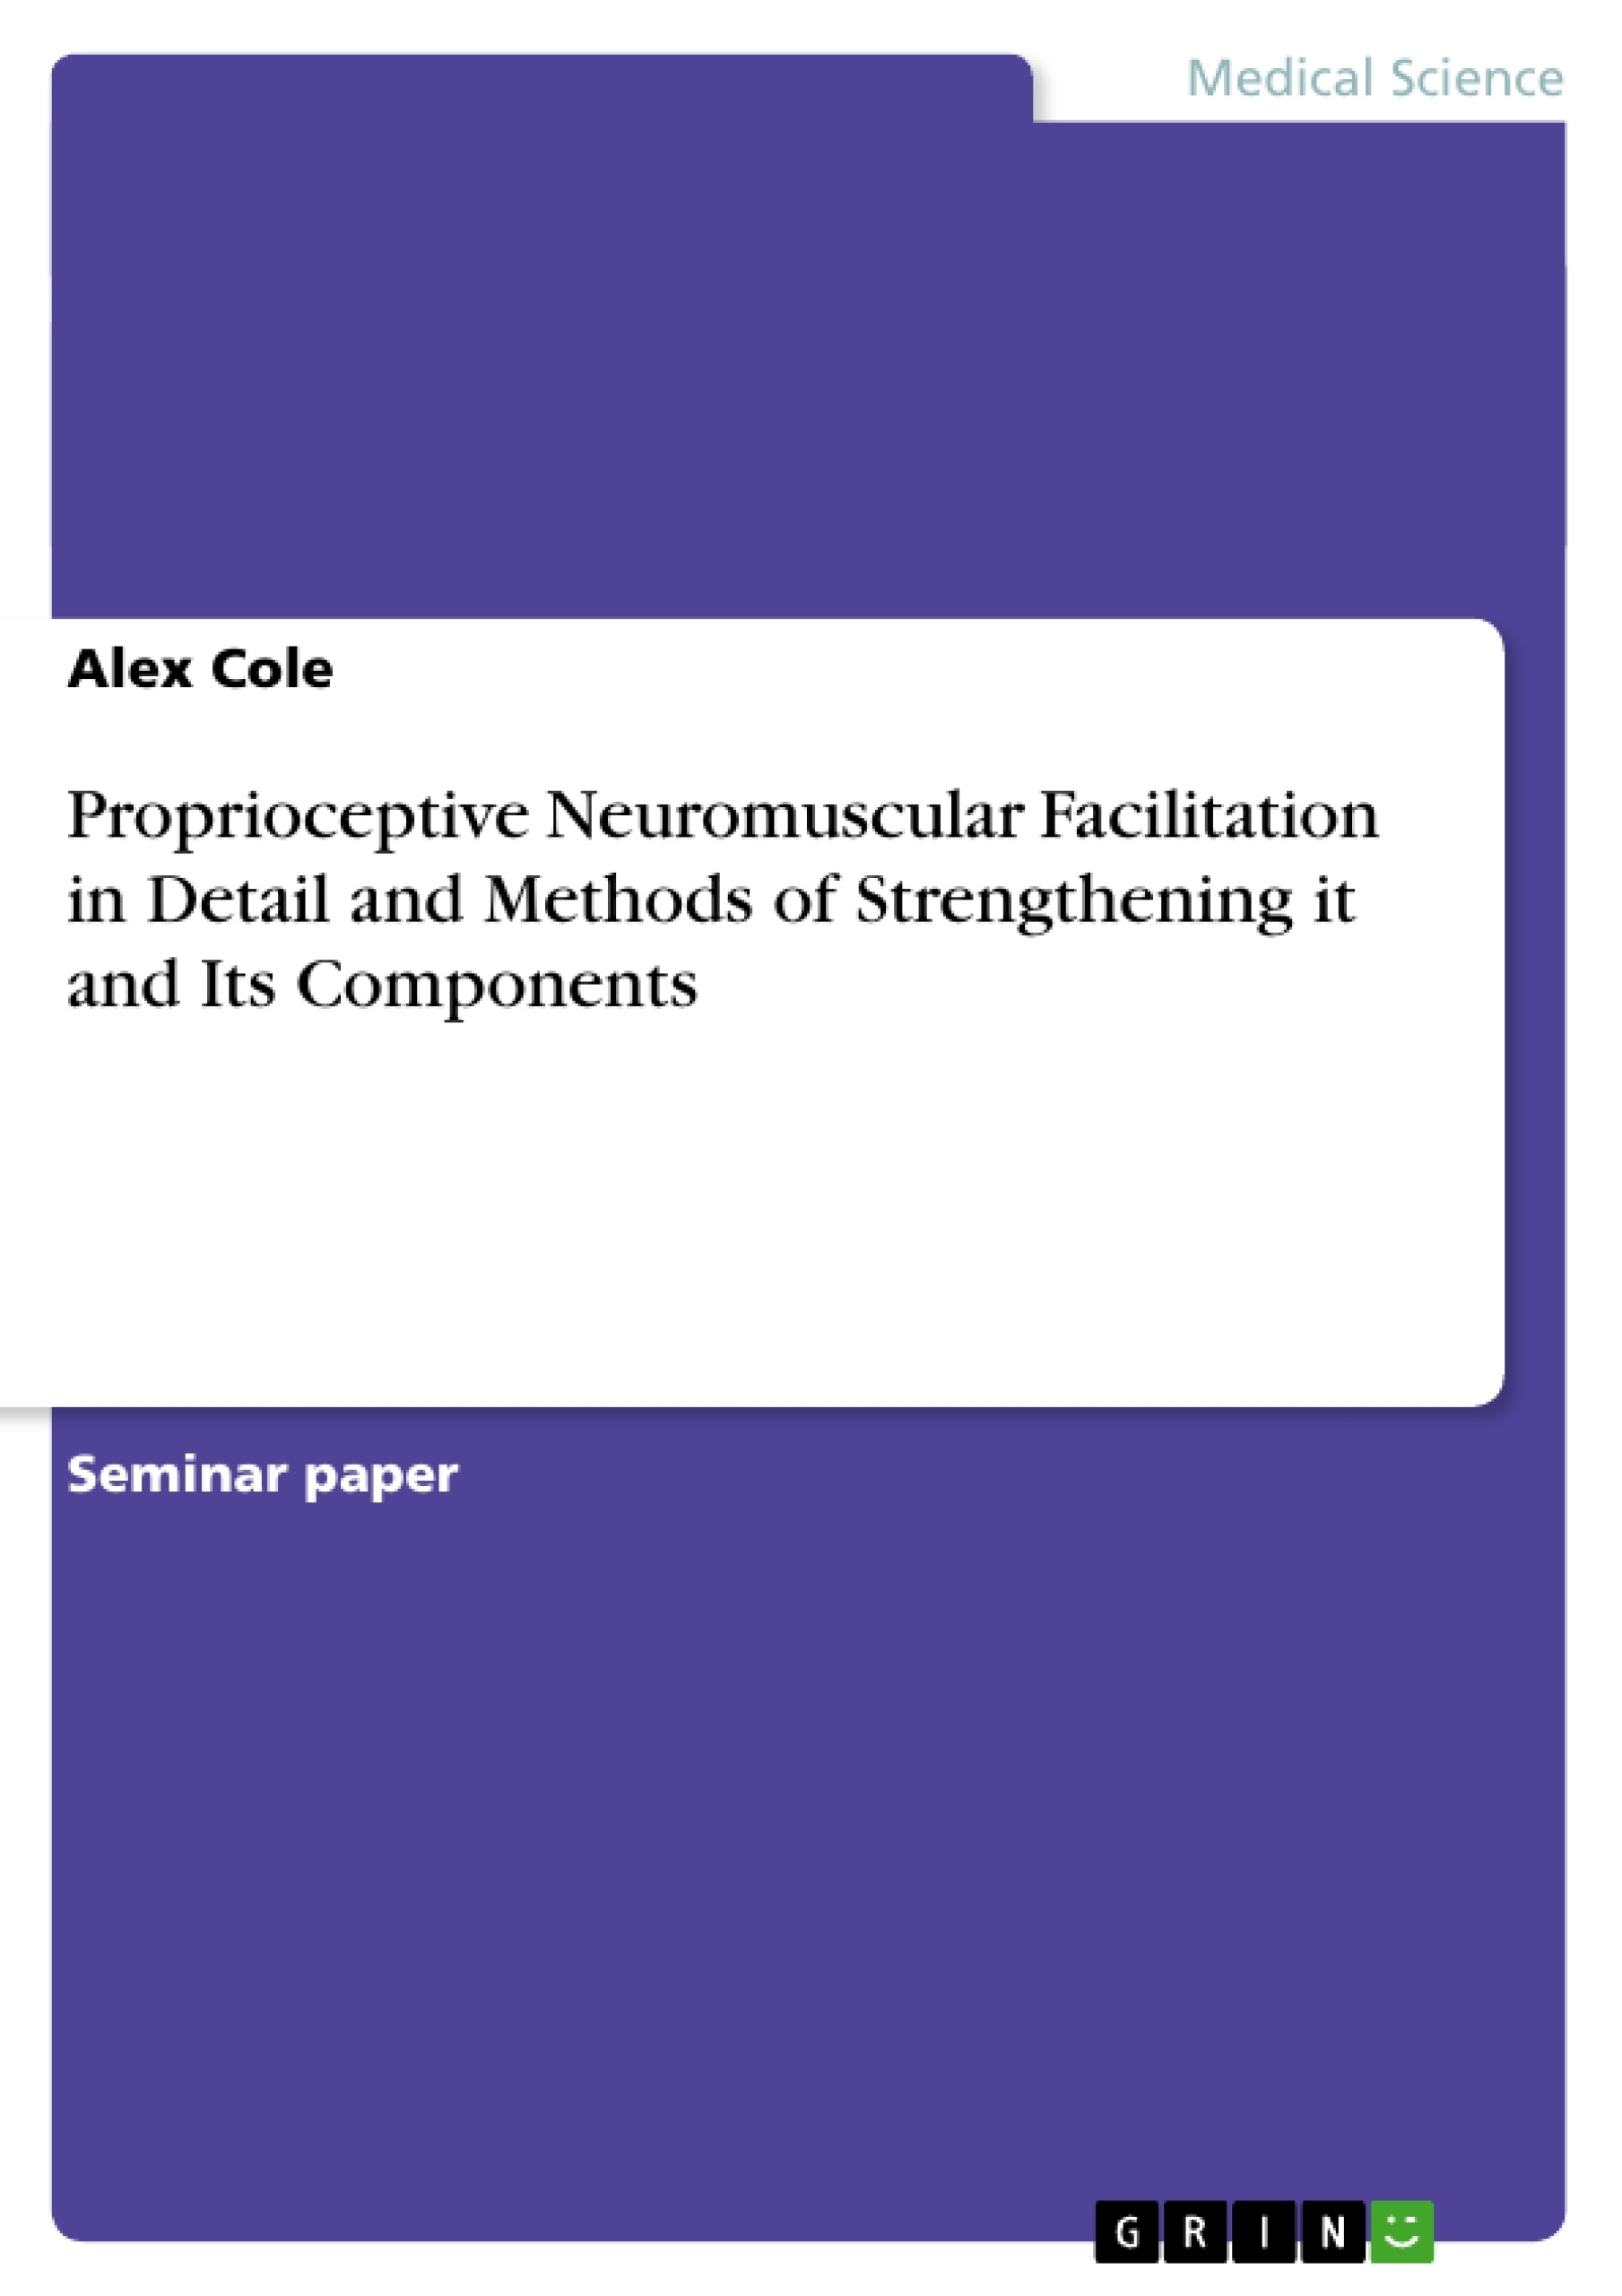 Title: Proprioceptive Neuromuscular Facilitation in Detail and Methods of Strengthening it and Its Components